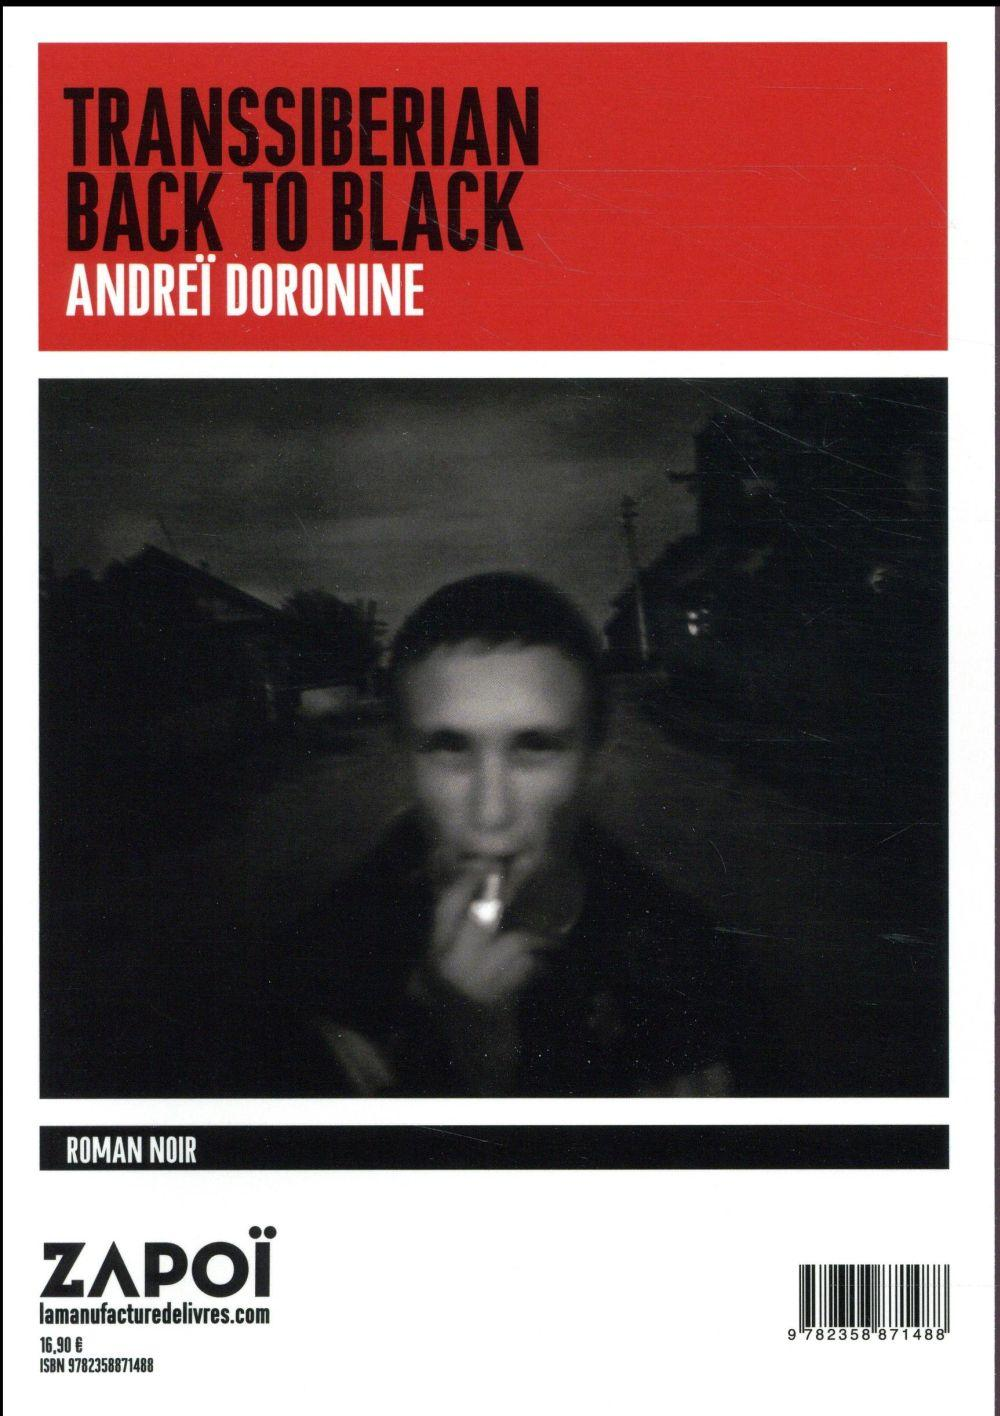 Transsiberian back to black  - Andrei Doronine